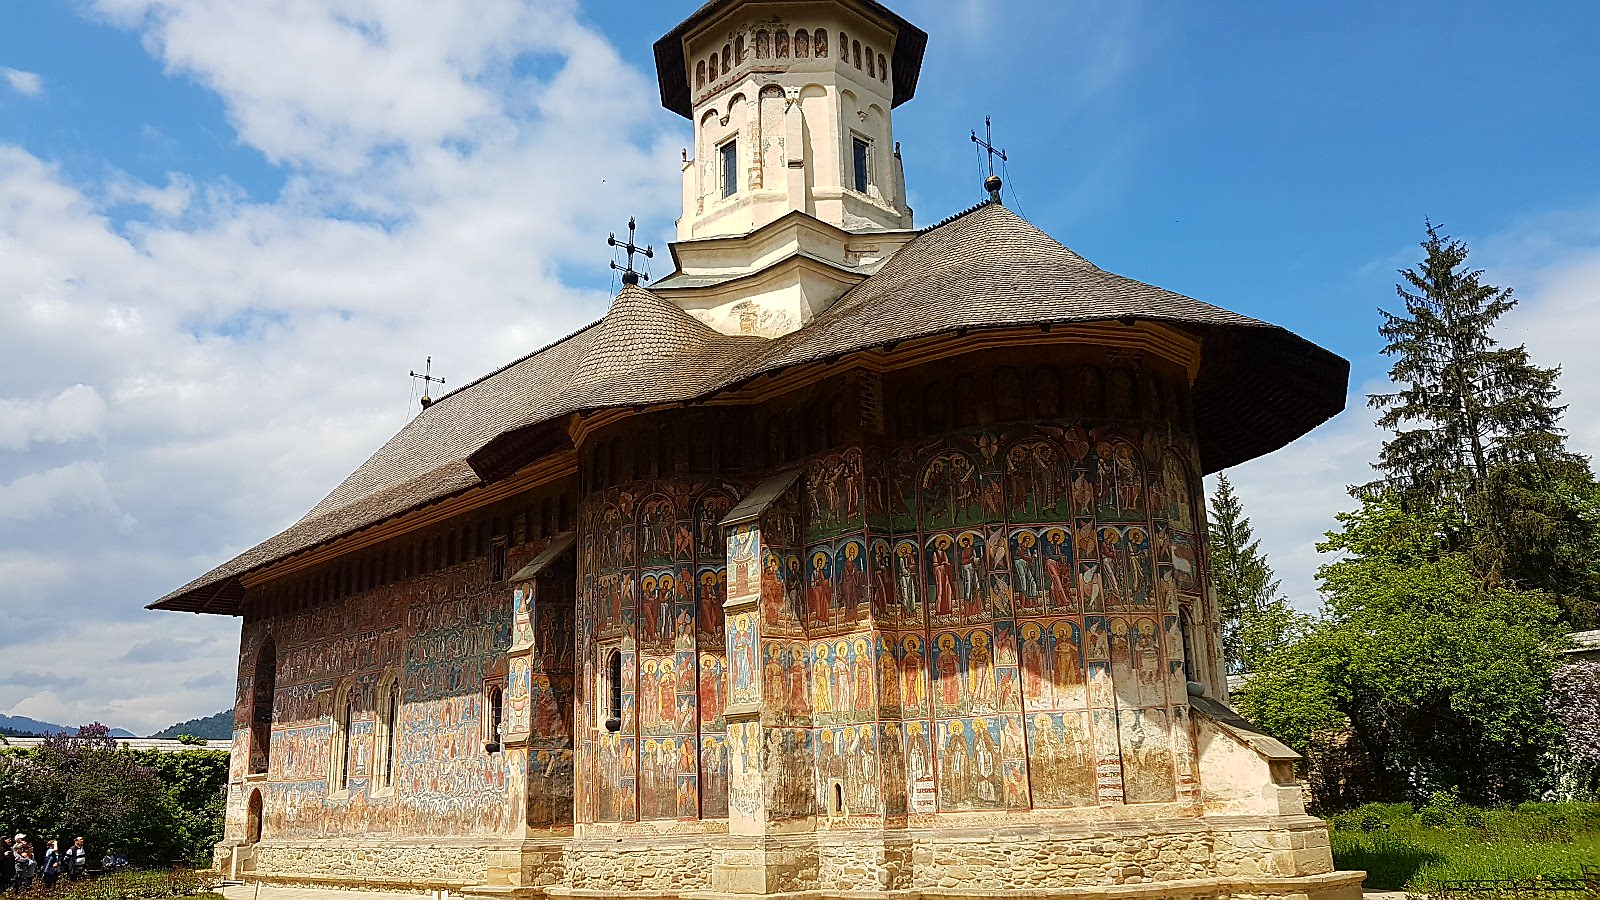 Moldovita Church, one of the painted monasteries, Romania - a great UNESCO heritage site in Europe. Read this article to discover more stunning UNESCO World Heritage Sites in Europe, including UNESCO monuments. #UNESCO #unescosites #unescositeseurope #europeunesco #romaniaunesco #romania